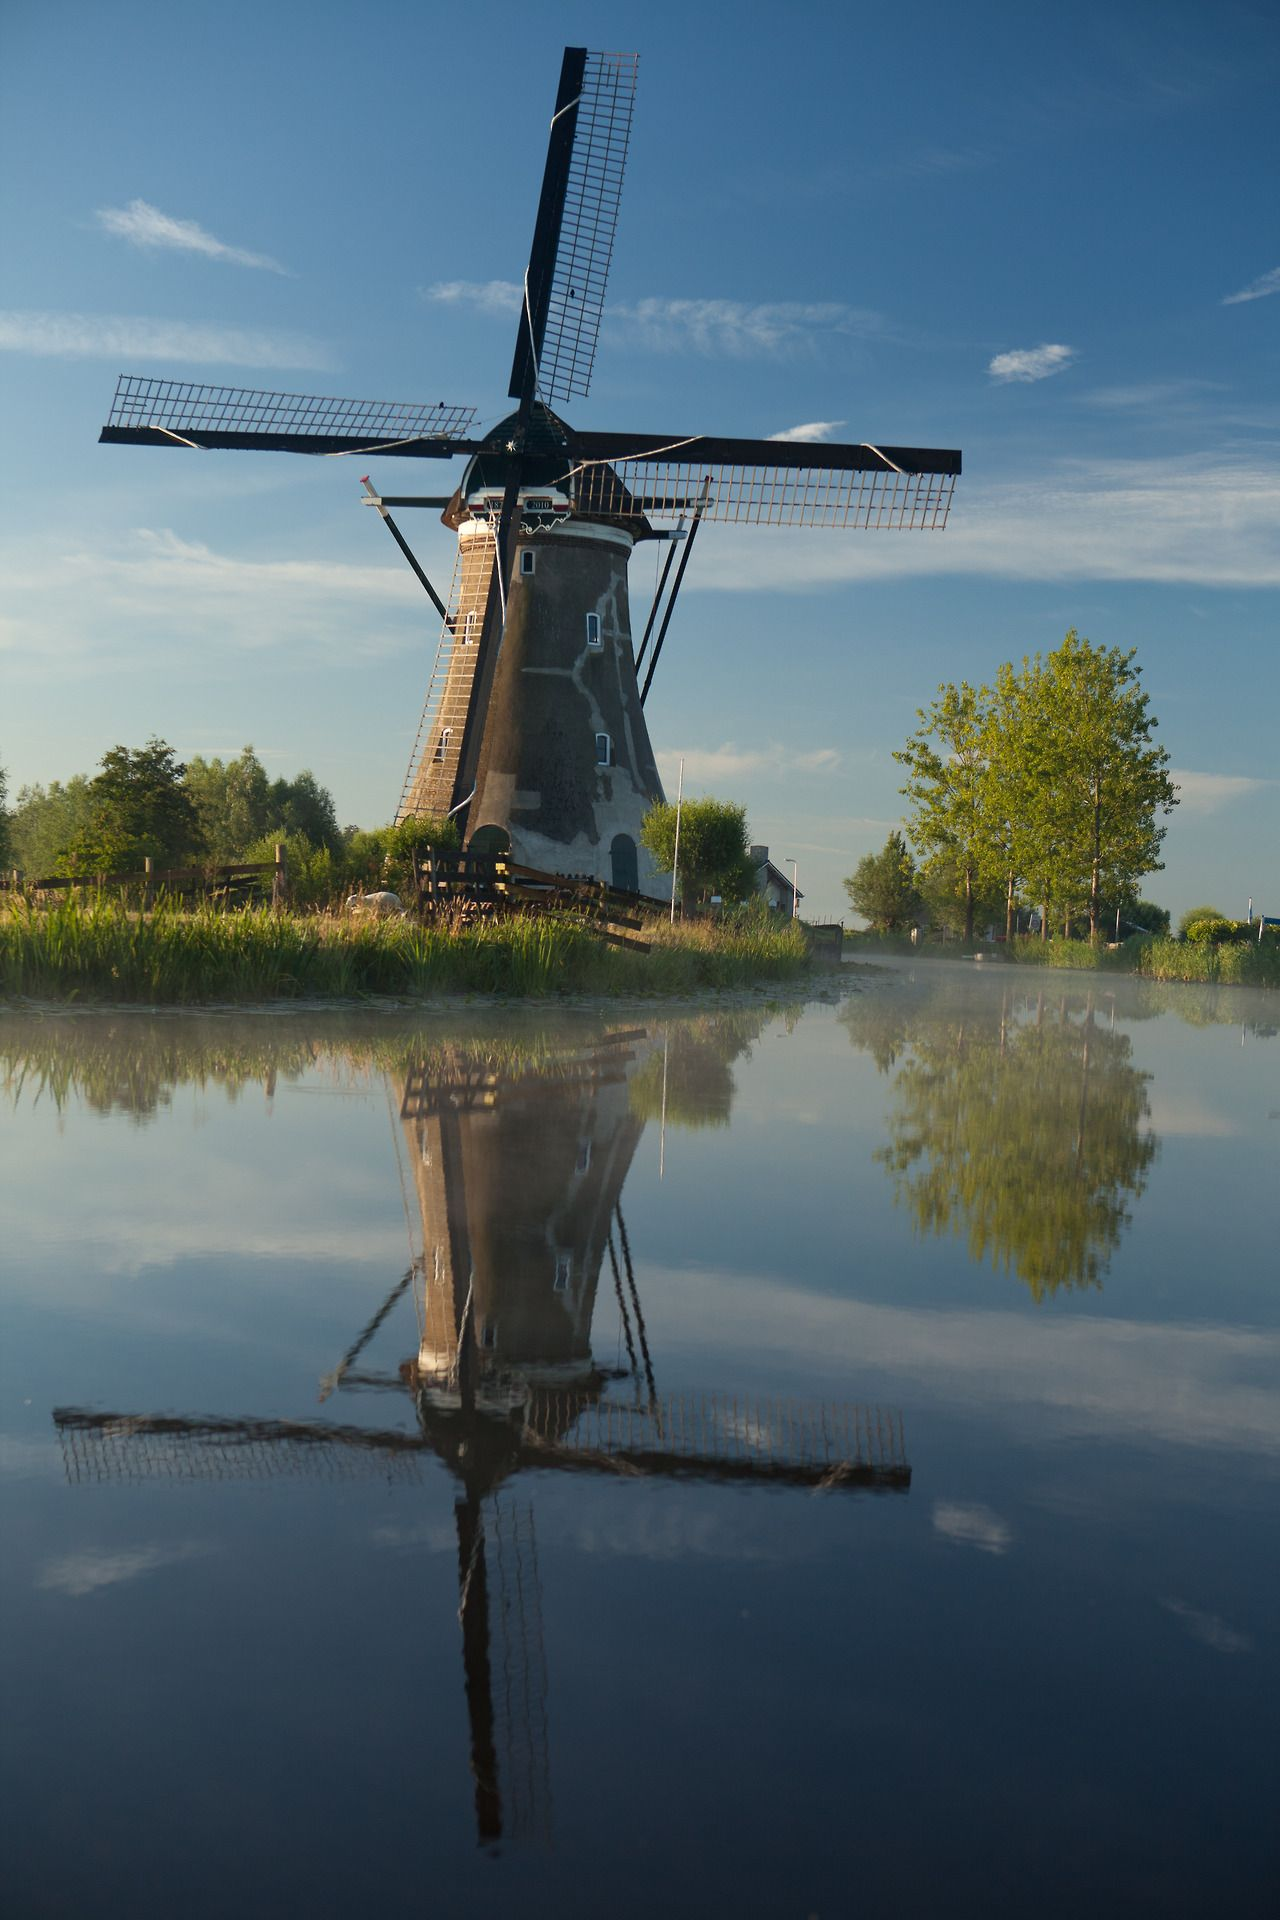 Dutch Windmill Haastrecht Zuid Holland Dutch Windmills Netherlands Windmills Holland Windmills